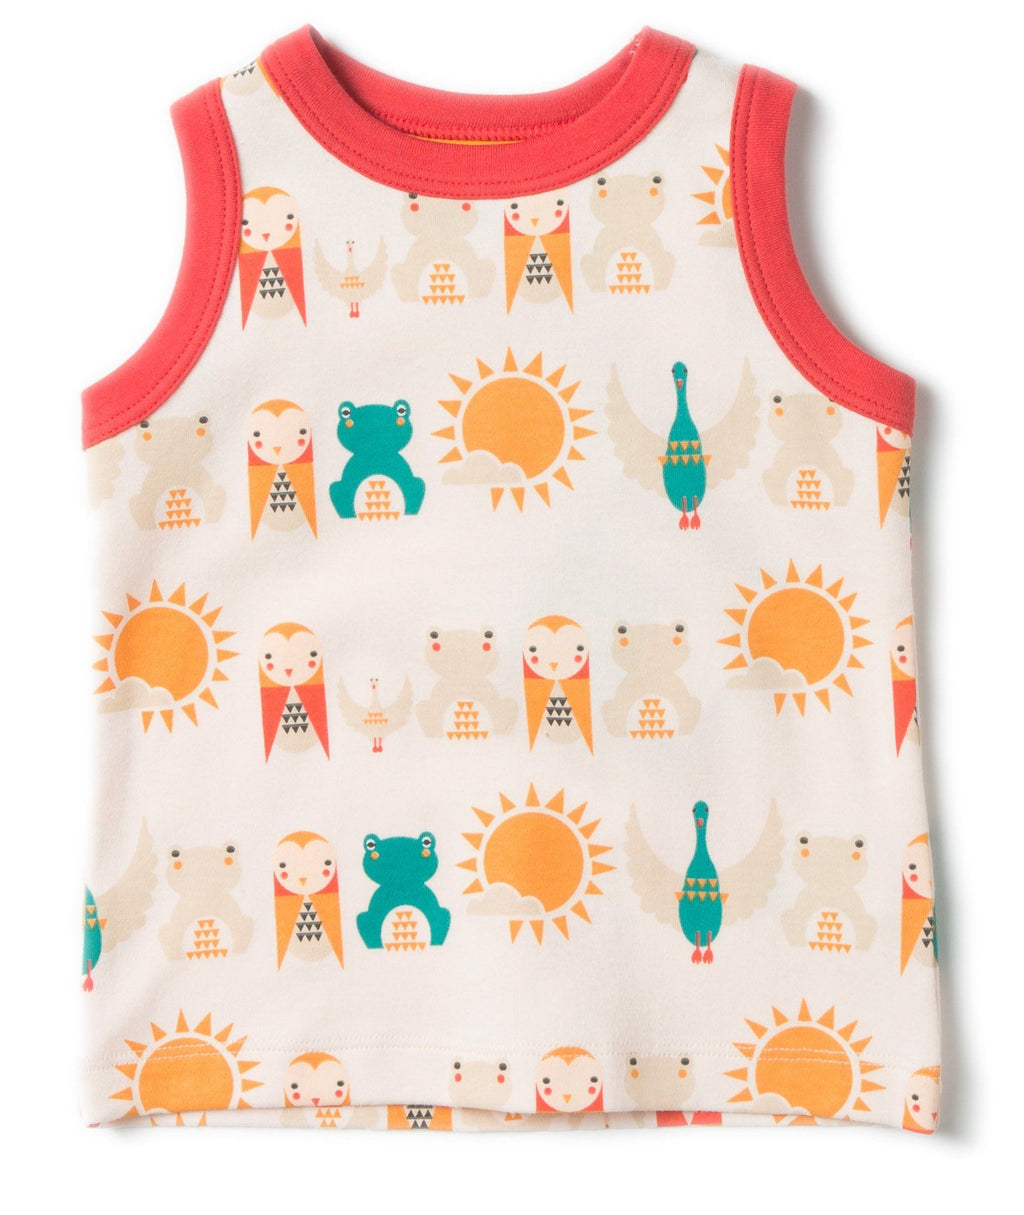 River friends sunshine vest